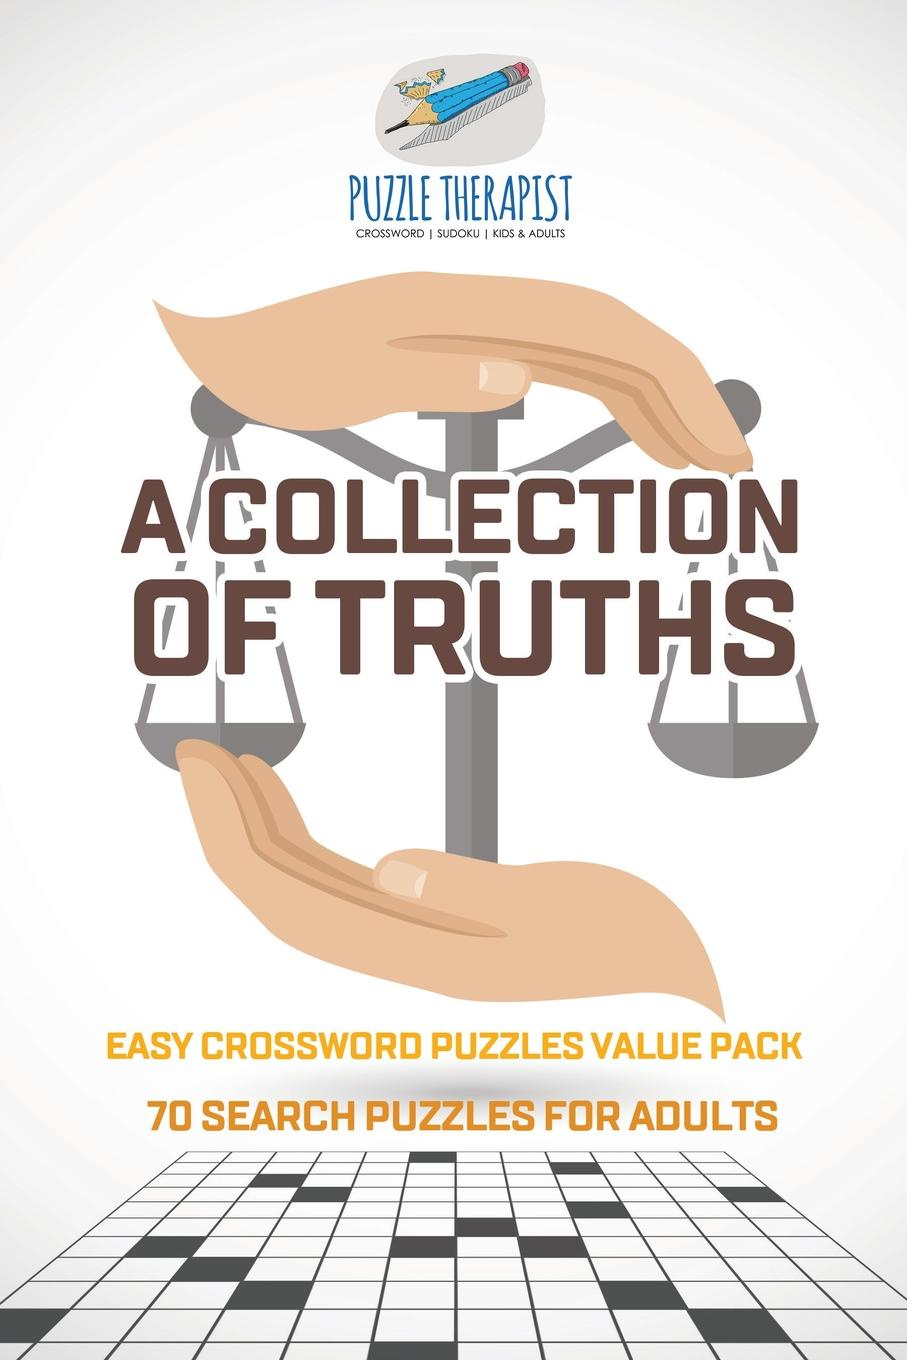 Puzzle Therapist A Collection of Truths . Easy Crossword Puzzles Value Pack . 70 Search Puzzles for Adults great big book of pencil puzzles